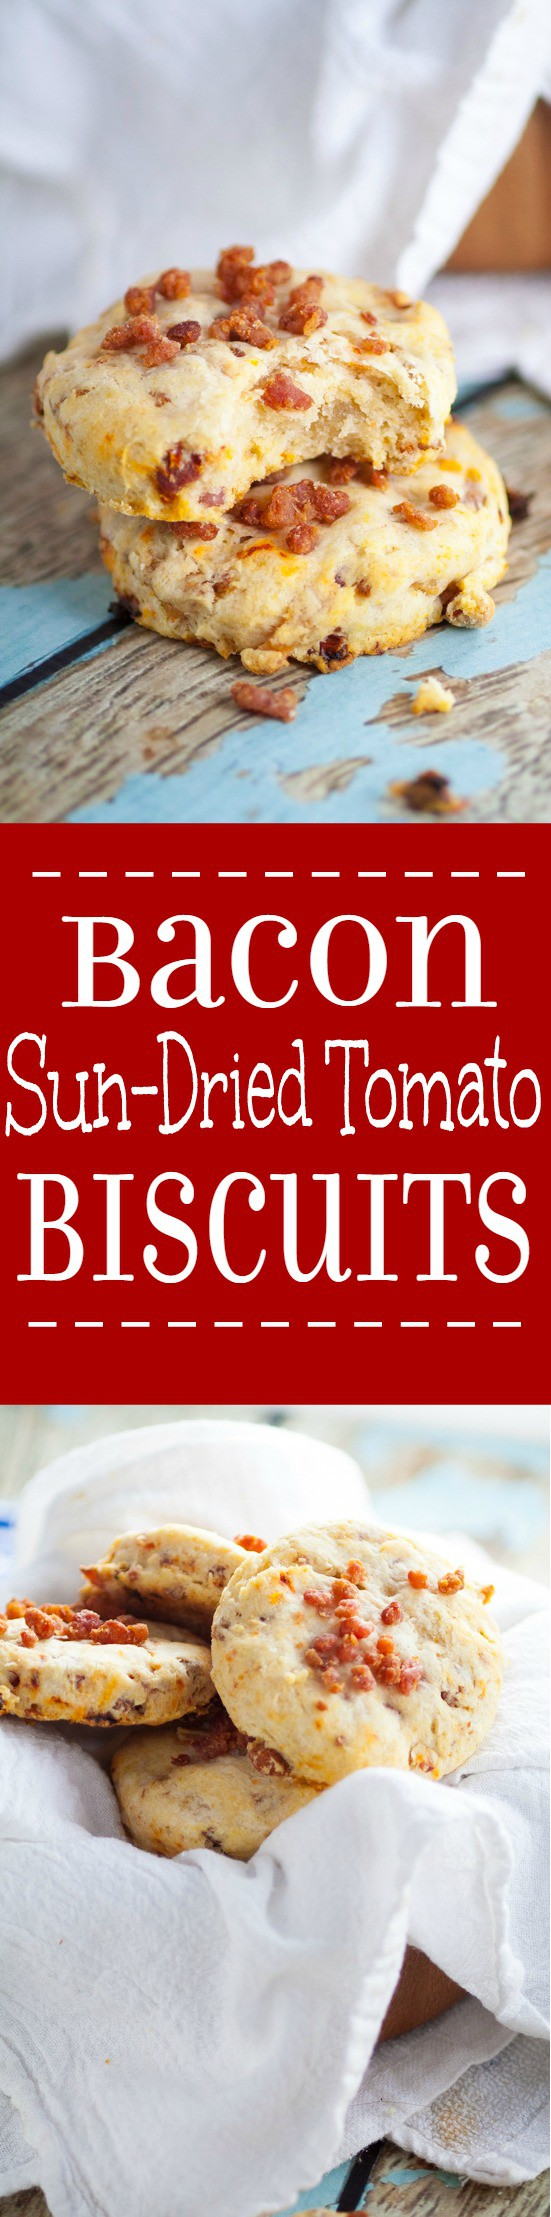 than a traditional biscuits, these Bacon and Sun Dried Tomato Biscuits ...